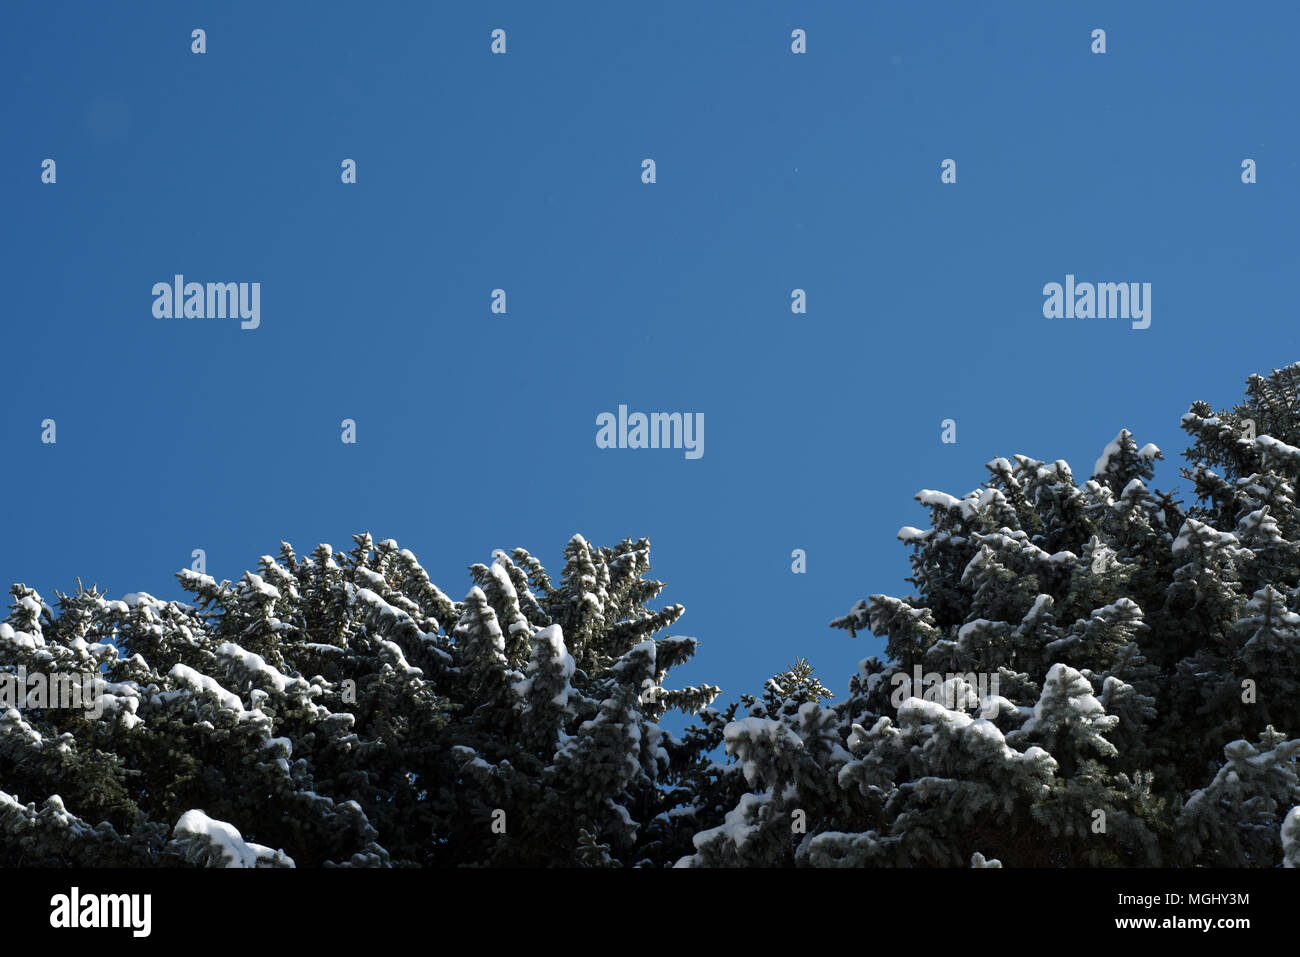 Blue winter sky without clouds and a pine fir tree with a dusting of light wintry snow on the branches of this lush evergreen woodland fauna Stock Photo